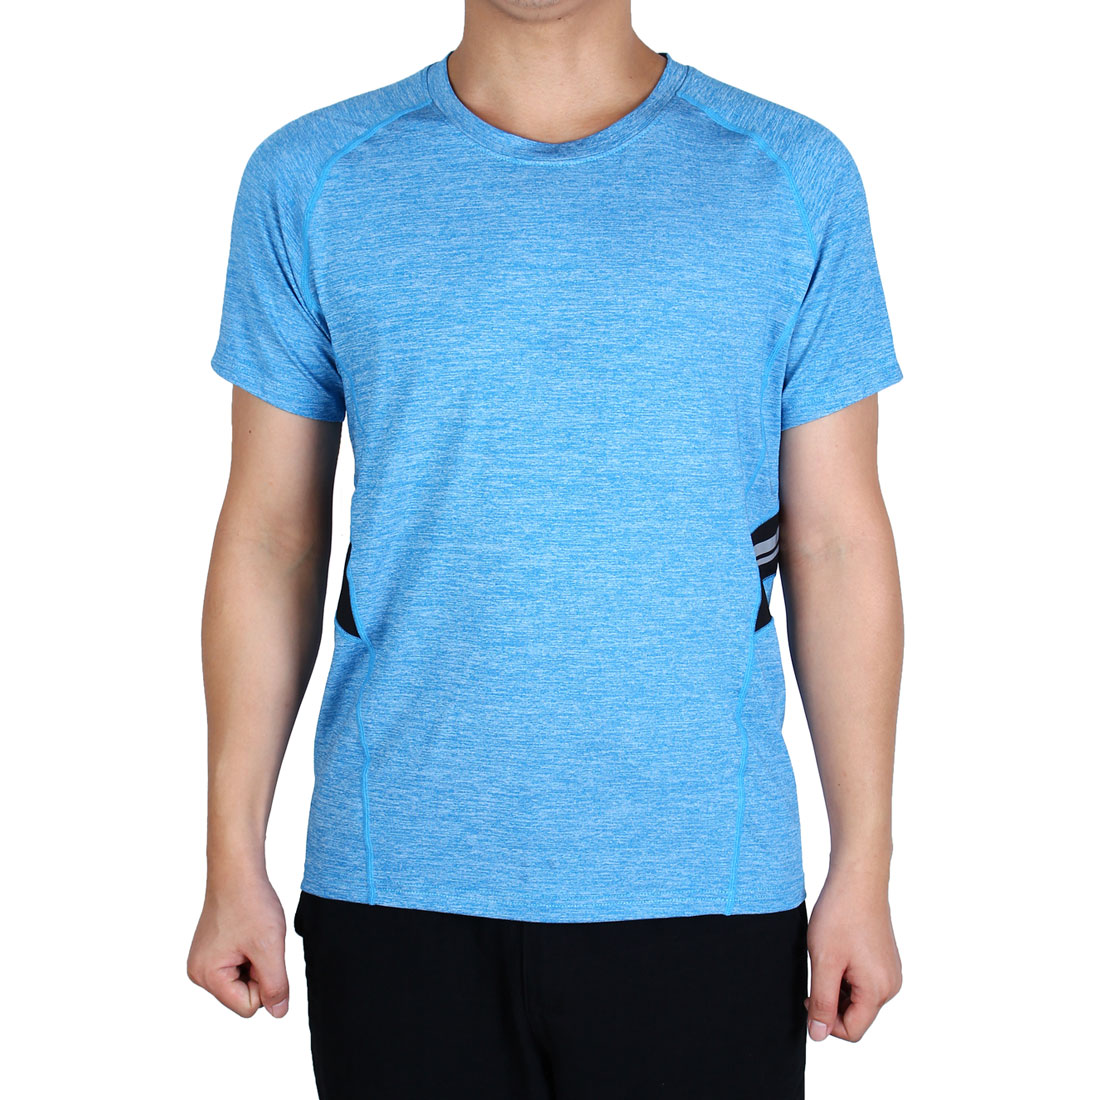 Adult Men Stretchy Short Sleeve Activewear Tee Outdoor Sports T-shirt Blue M